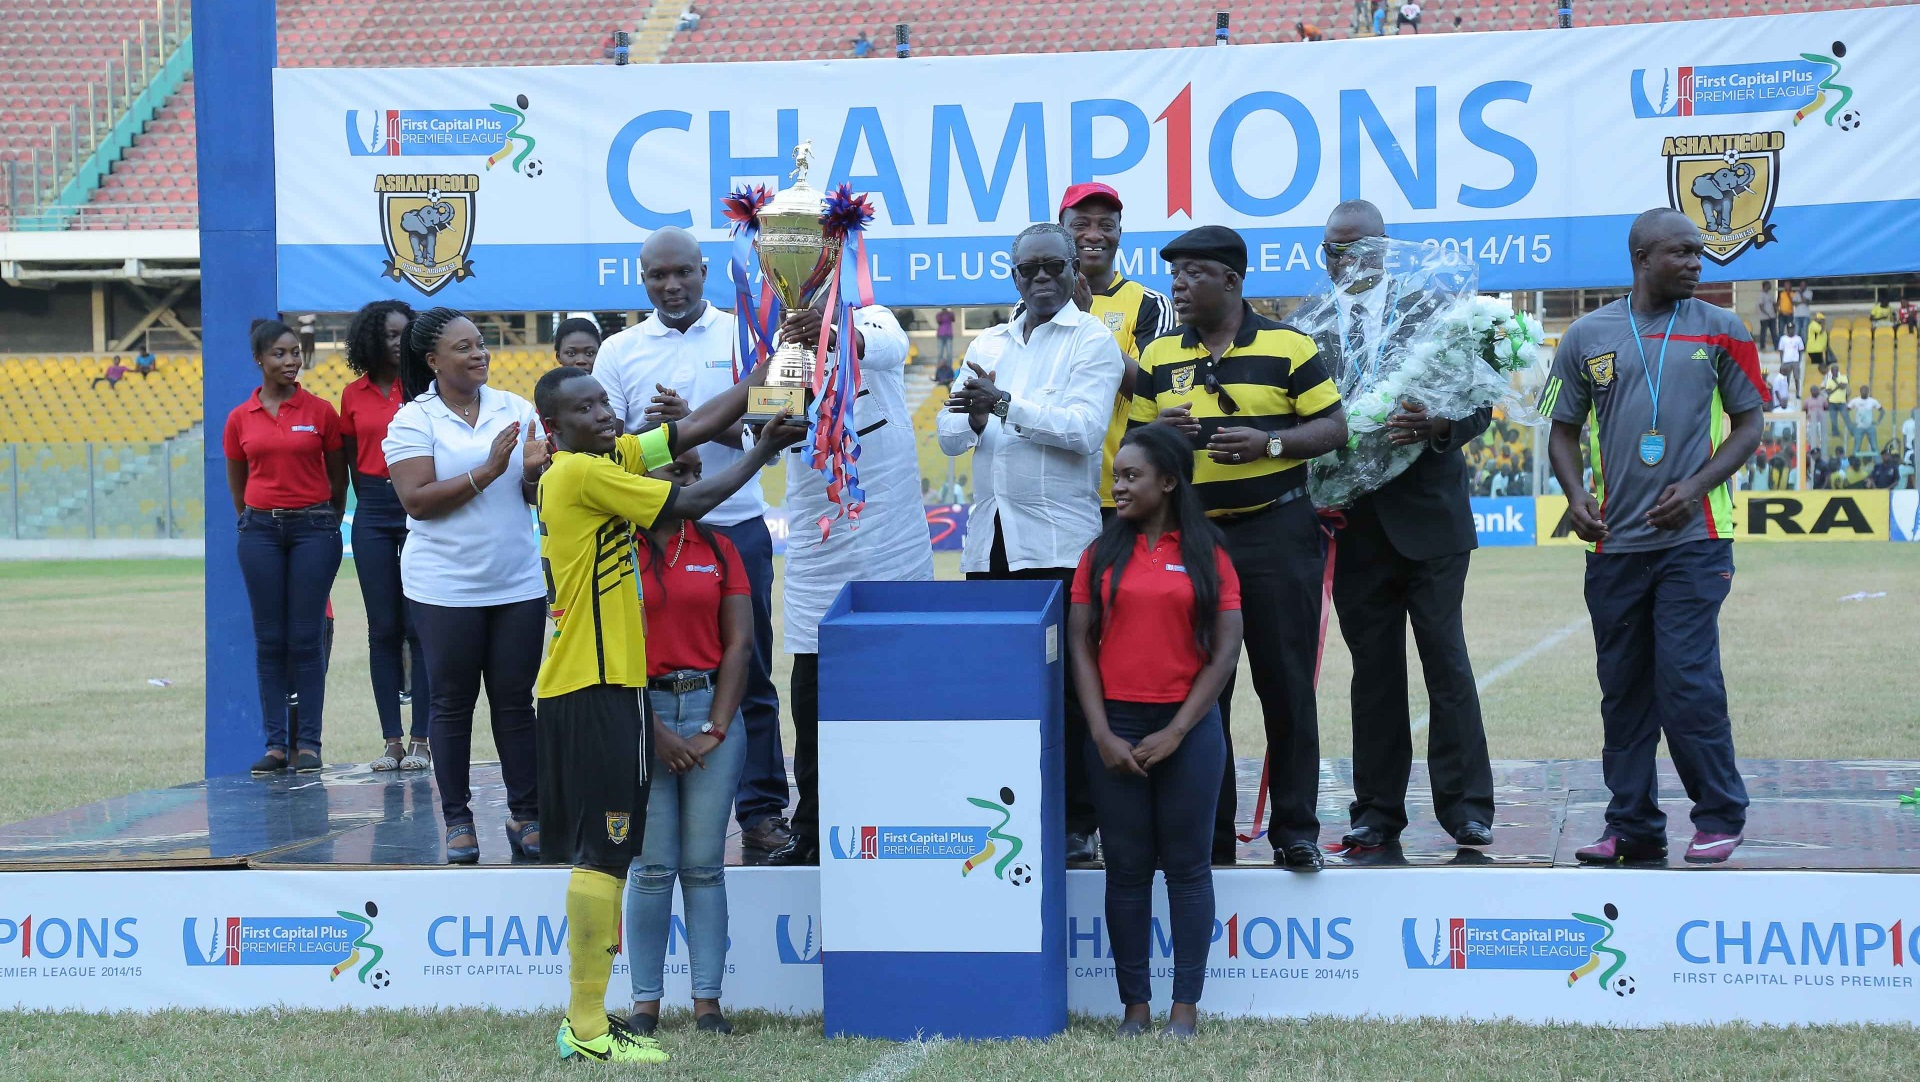 Ghana Premier League trophy presented to Ashanti Gold